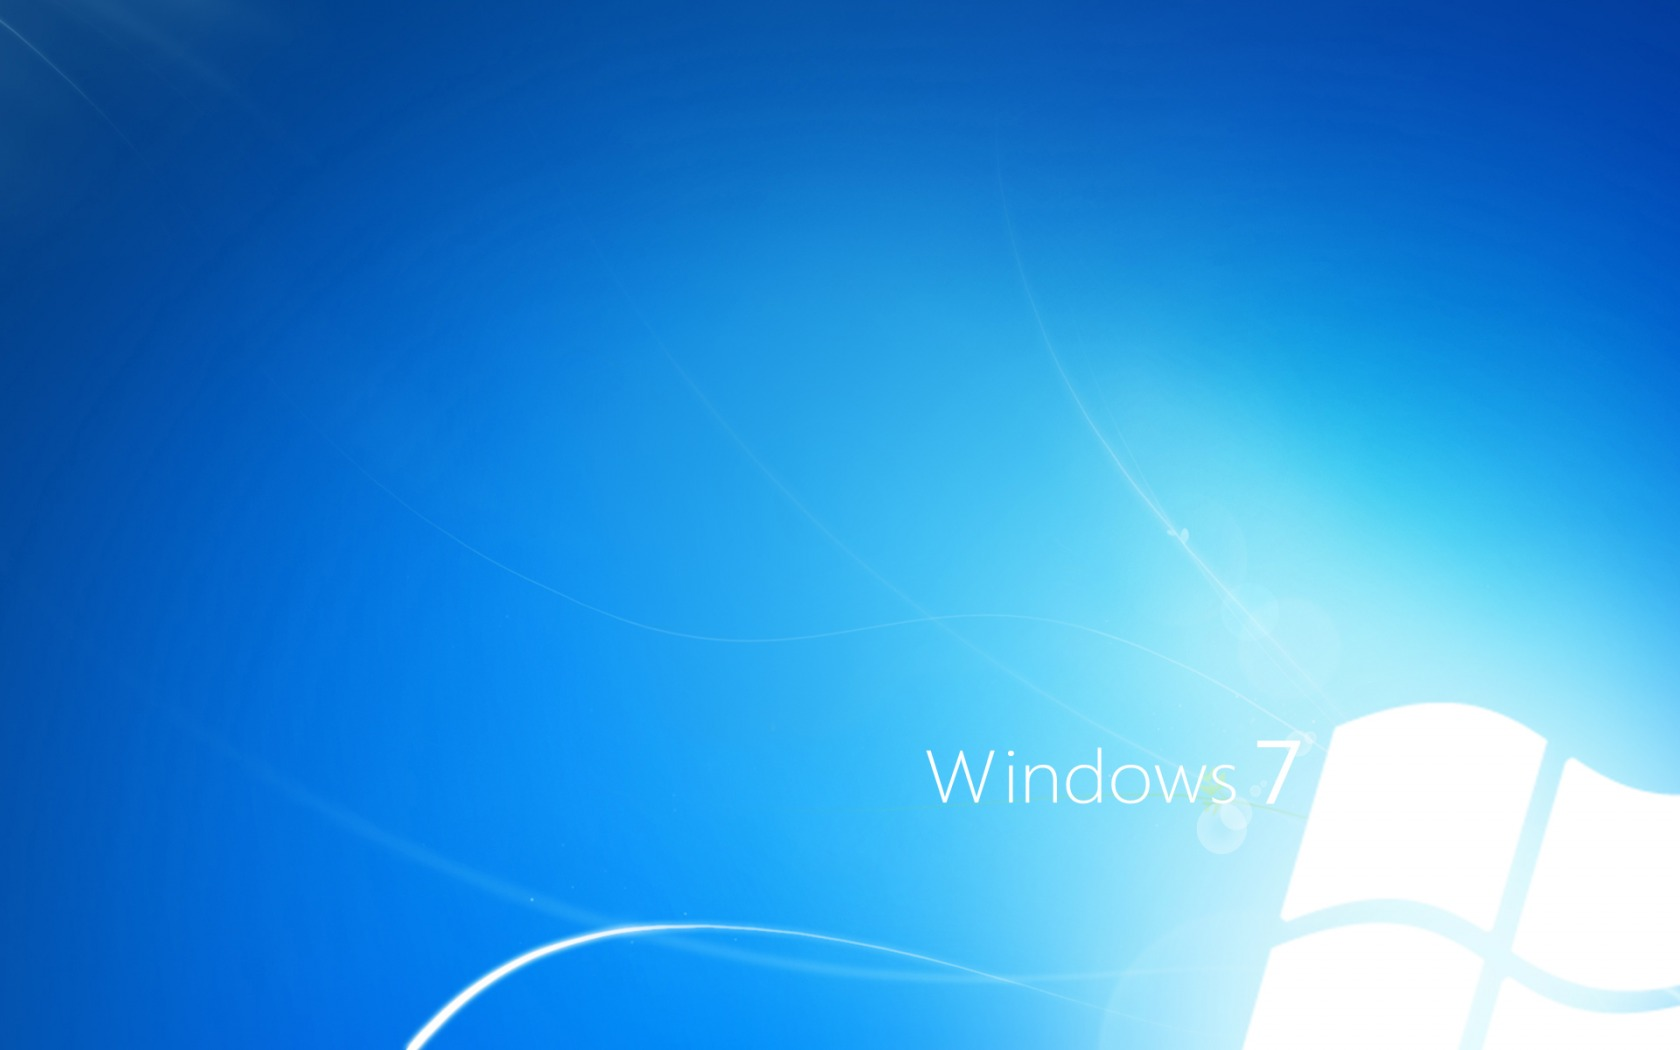 How to set night mode for windows 7/8/10, blue light filters.